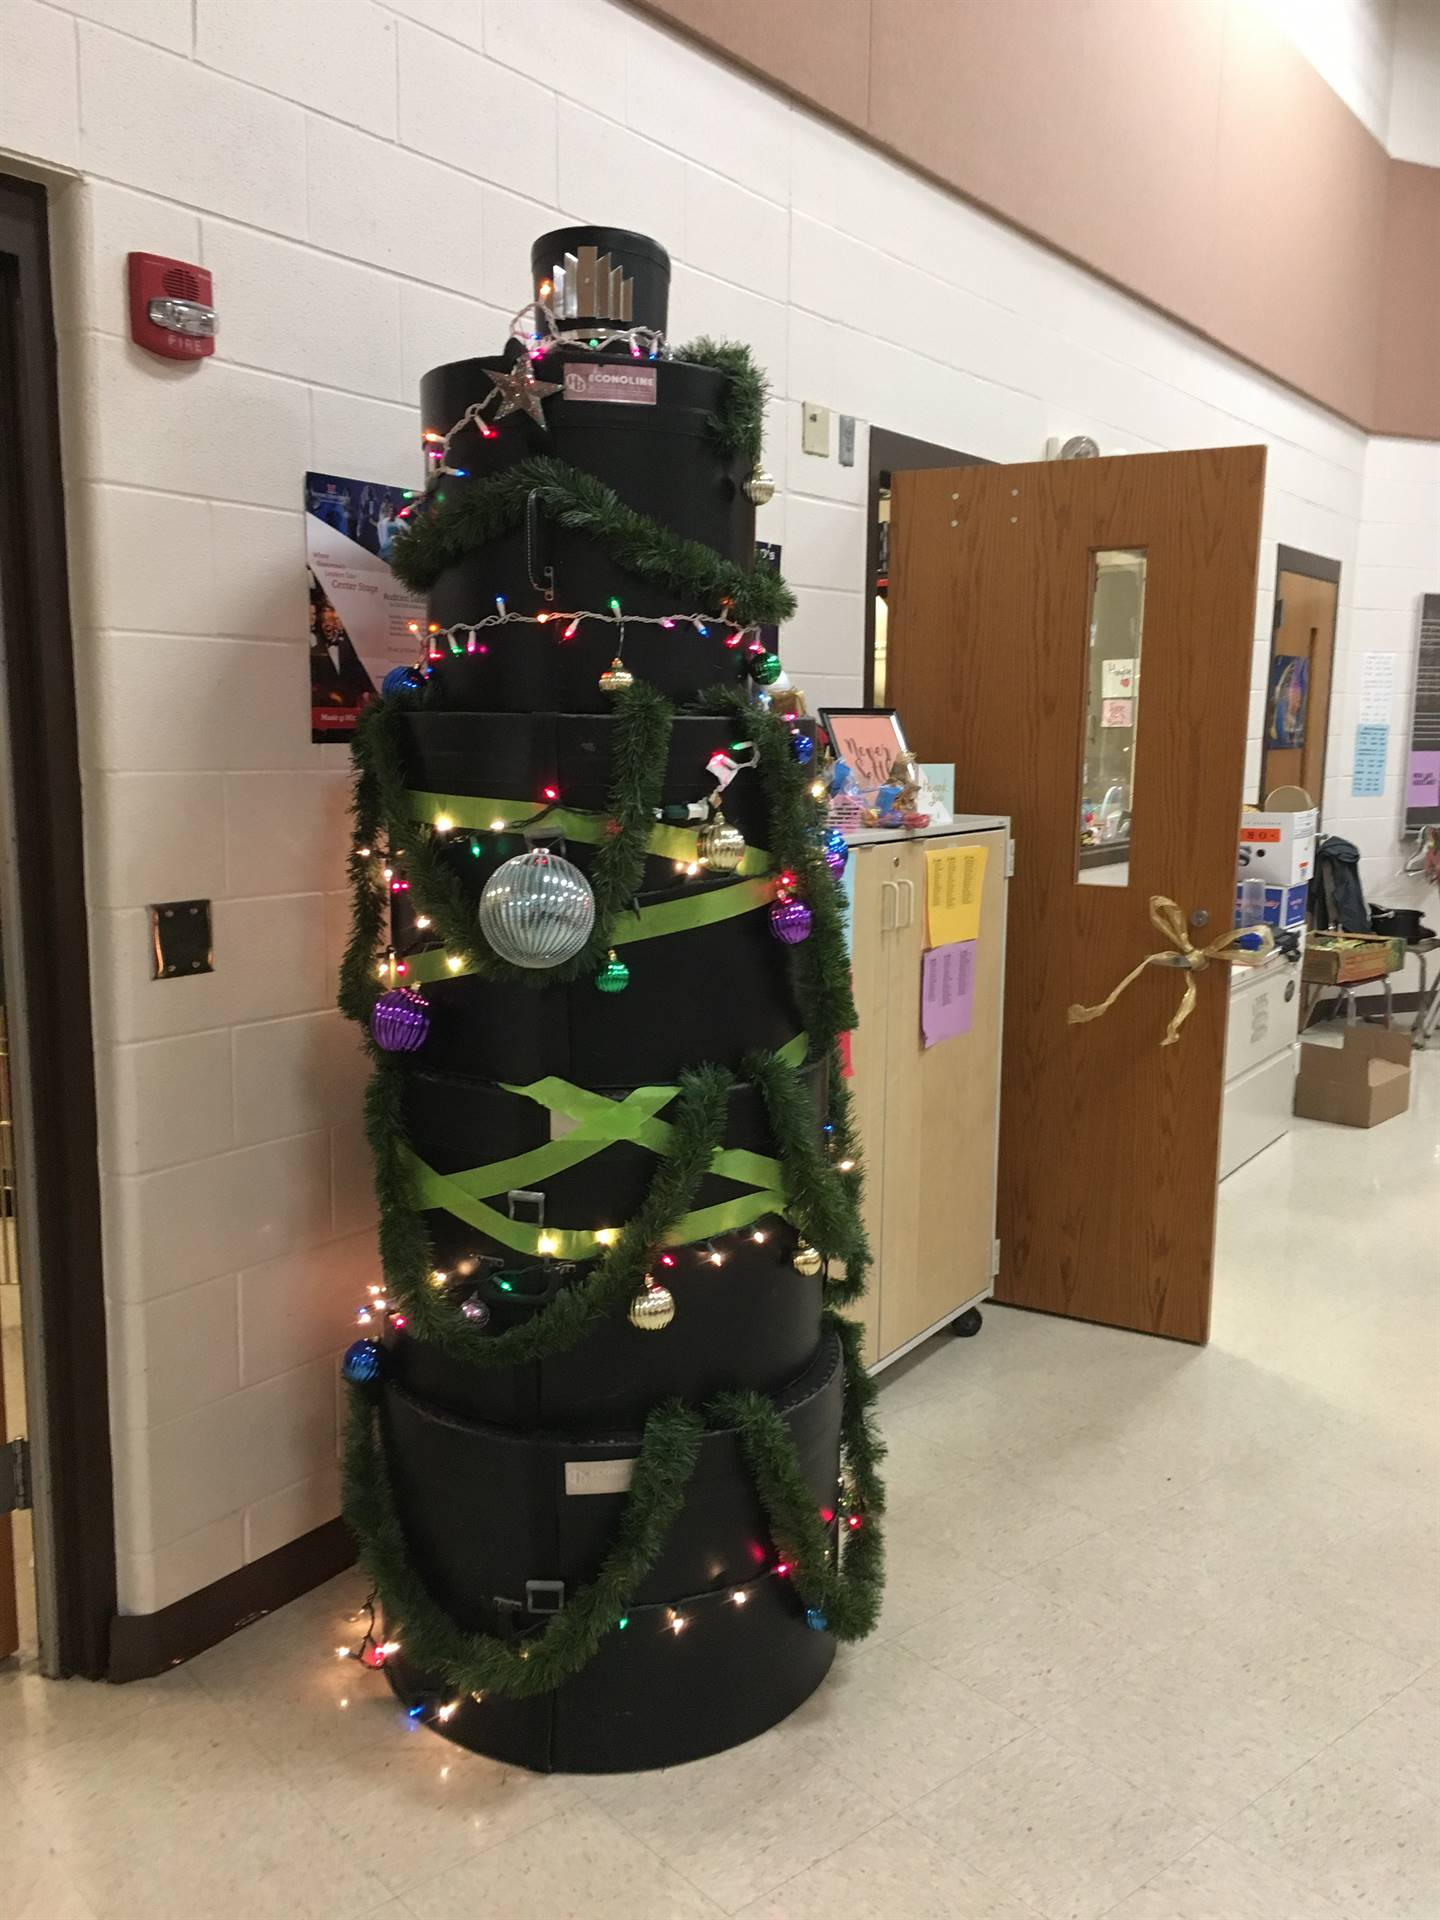 Holidays in the band room